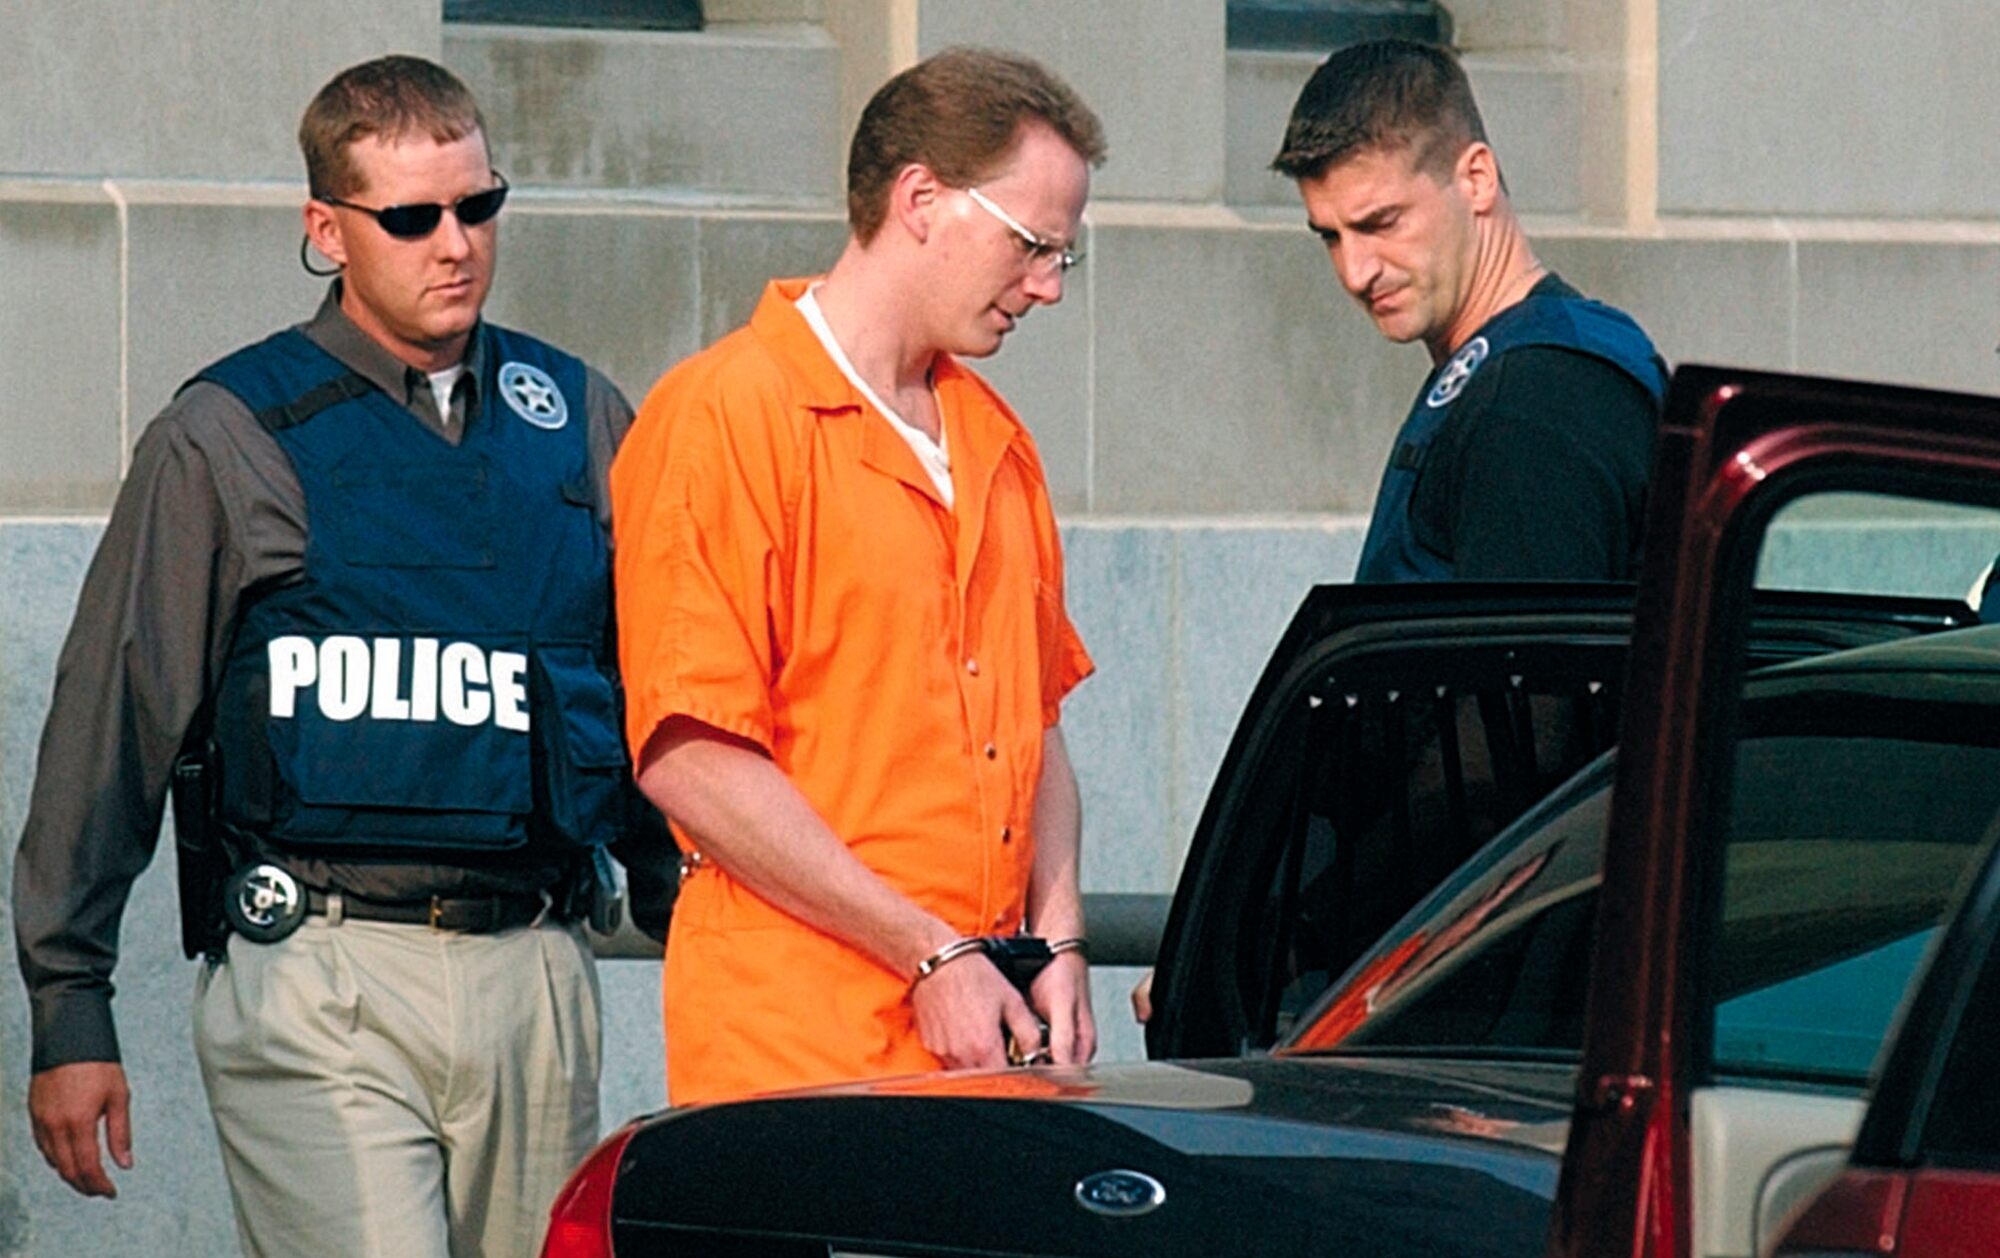 Iowa meth kingpin Dustin Honken executed, third federal execution this week